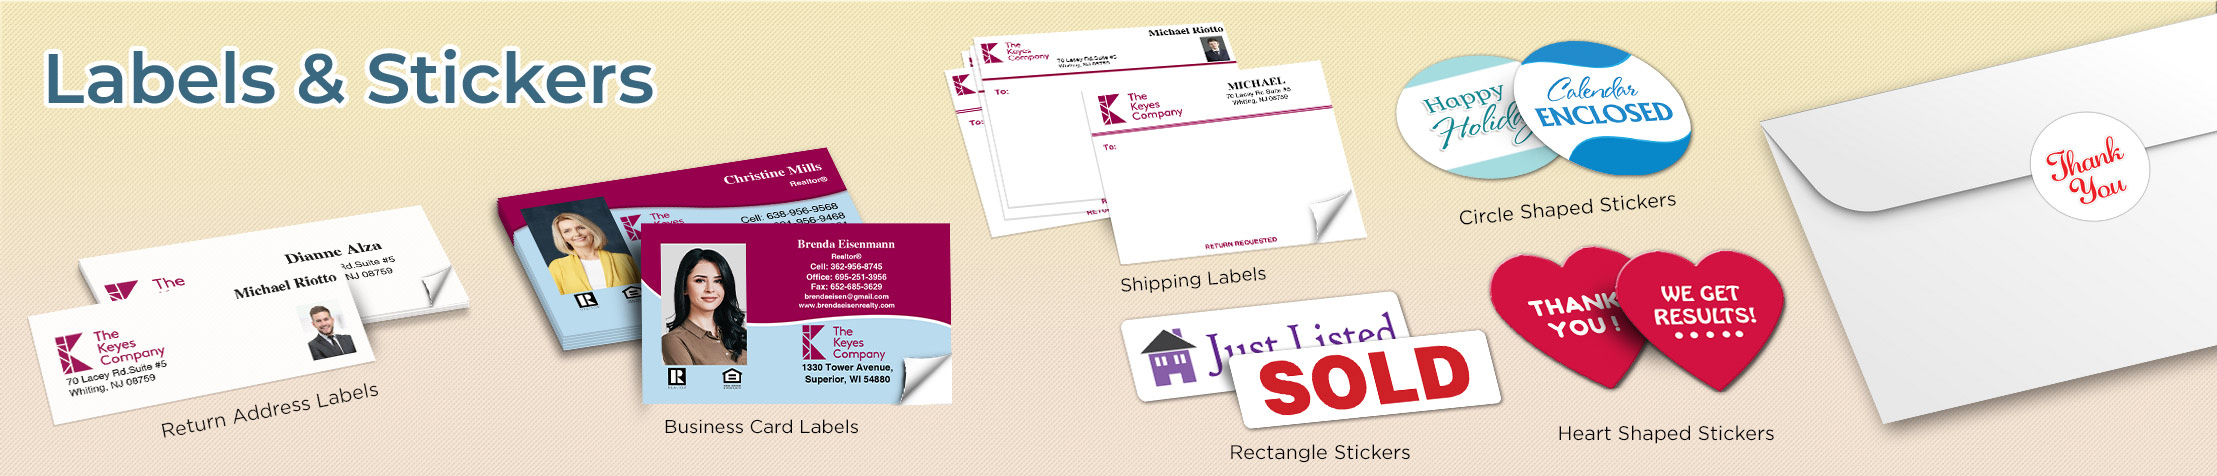 The Keyes Company Real Estate Labels and Stickers - The Keyes Company  business card labels, return address labels, shipping labels, and assorted stickers | BestPrintBuy.com